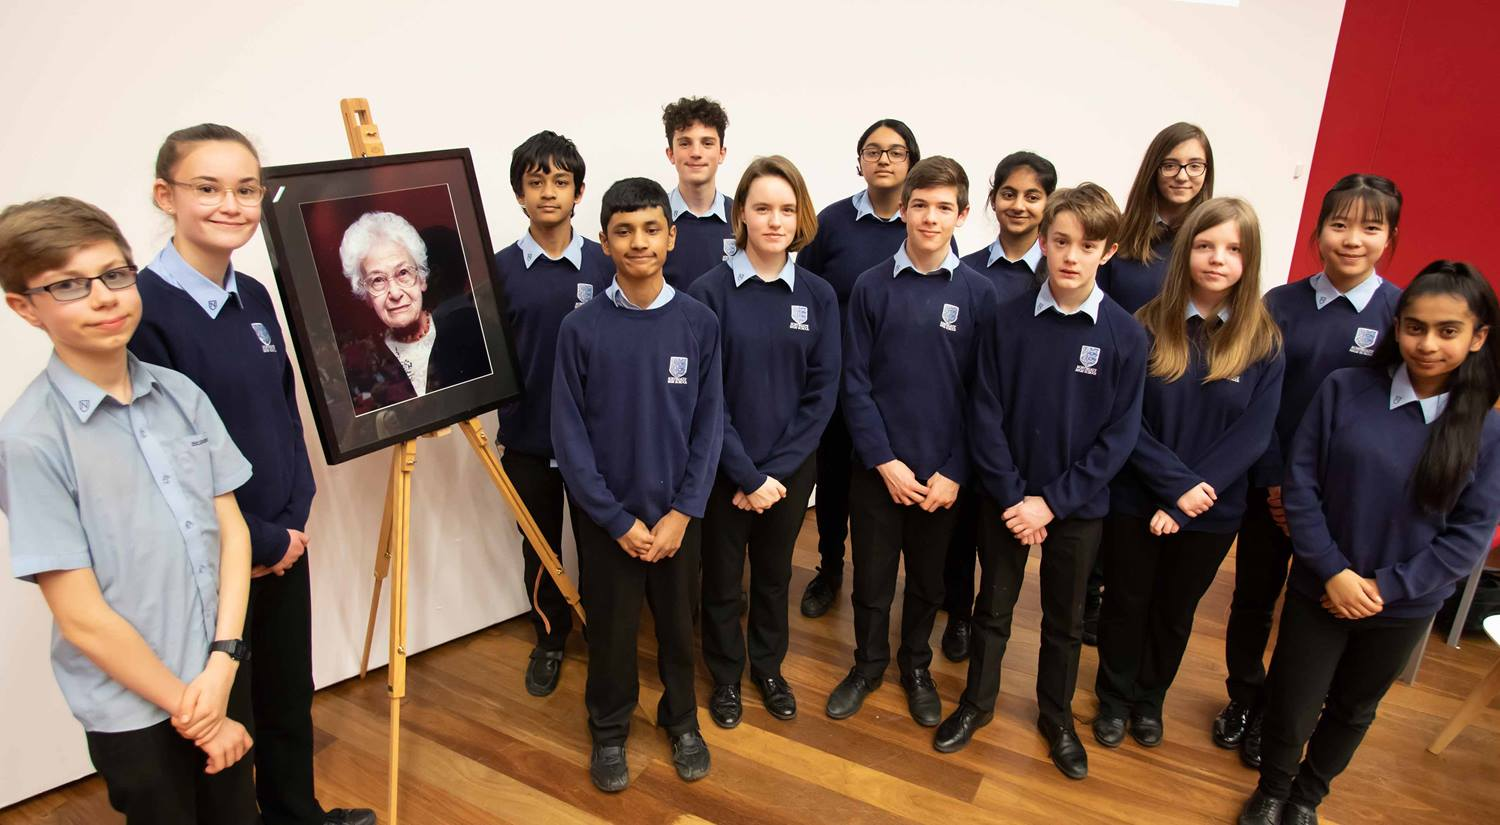 Dora Love Prize 2020 runners-up, Northgate High School with a portrait of Dora Love